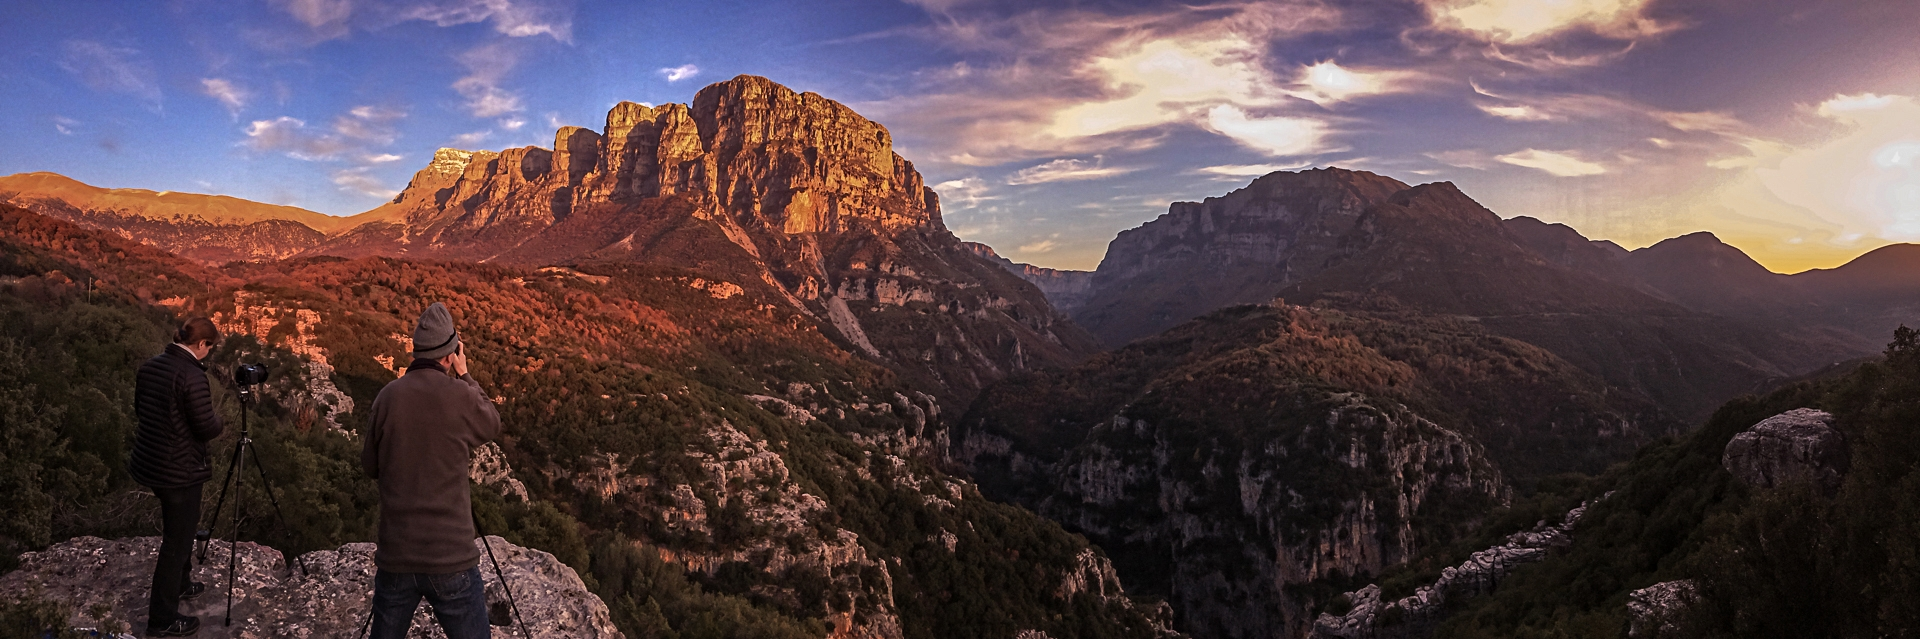 photographing mount tymfis during our landscape photography workshop to meteora & western pindos.